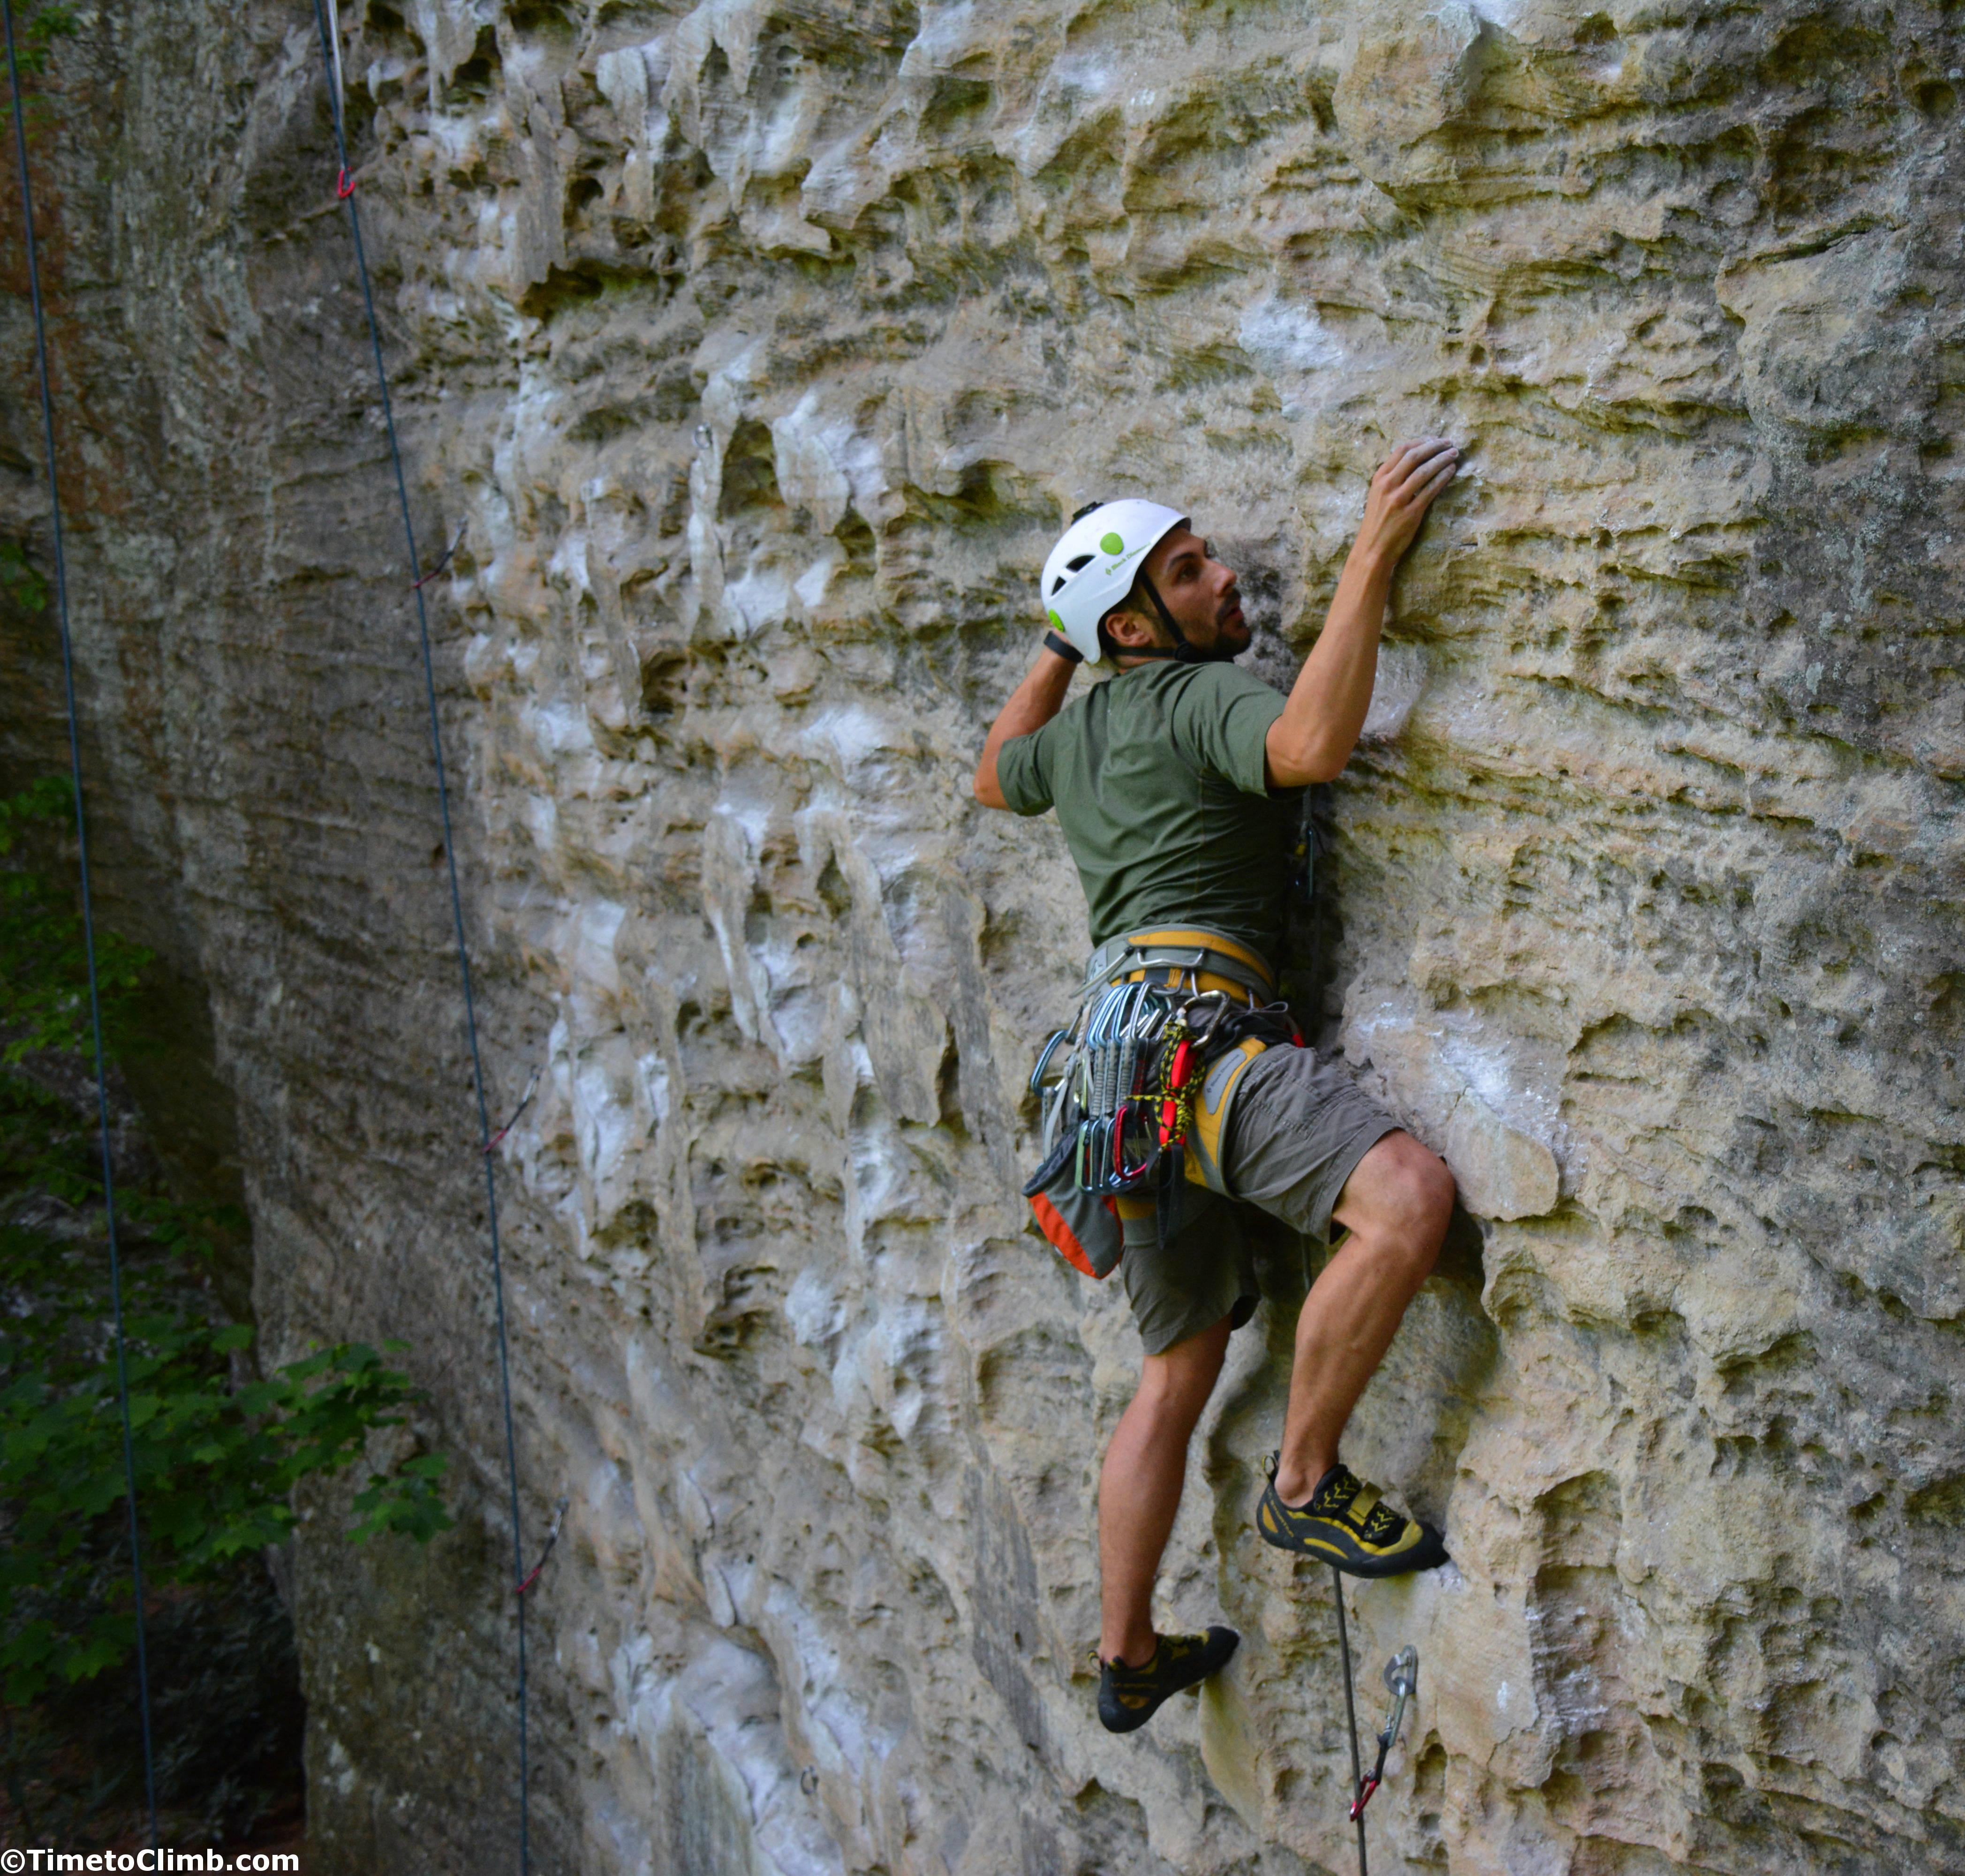 Muir Valley Climbing In Red River Gorge